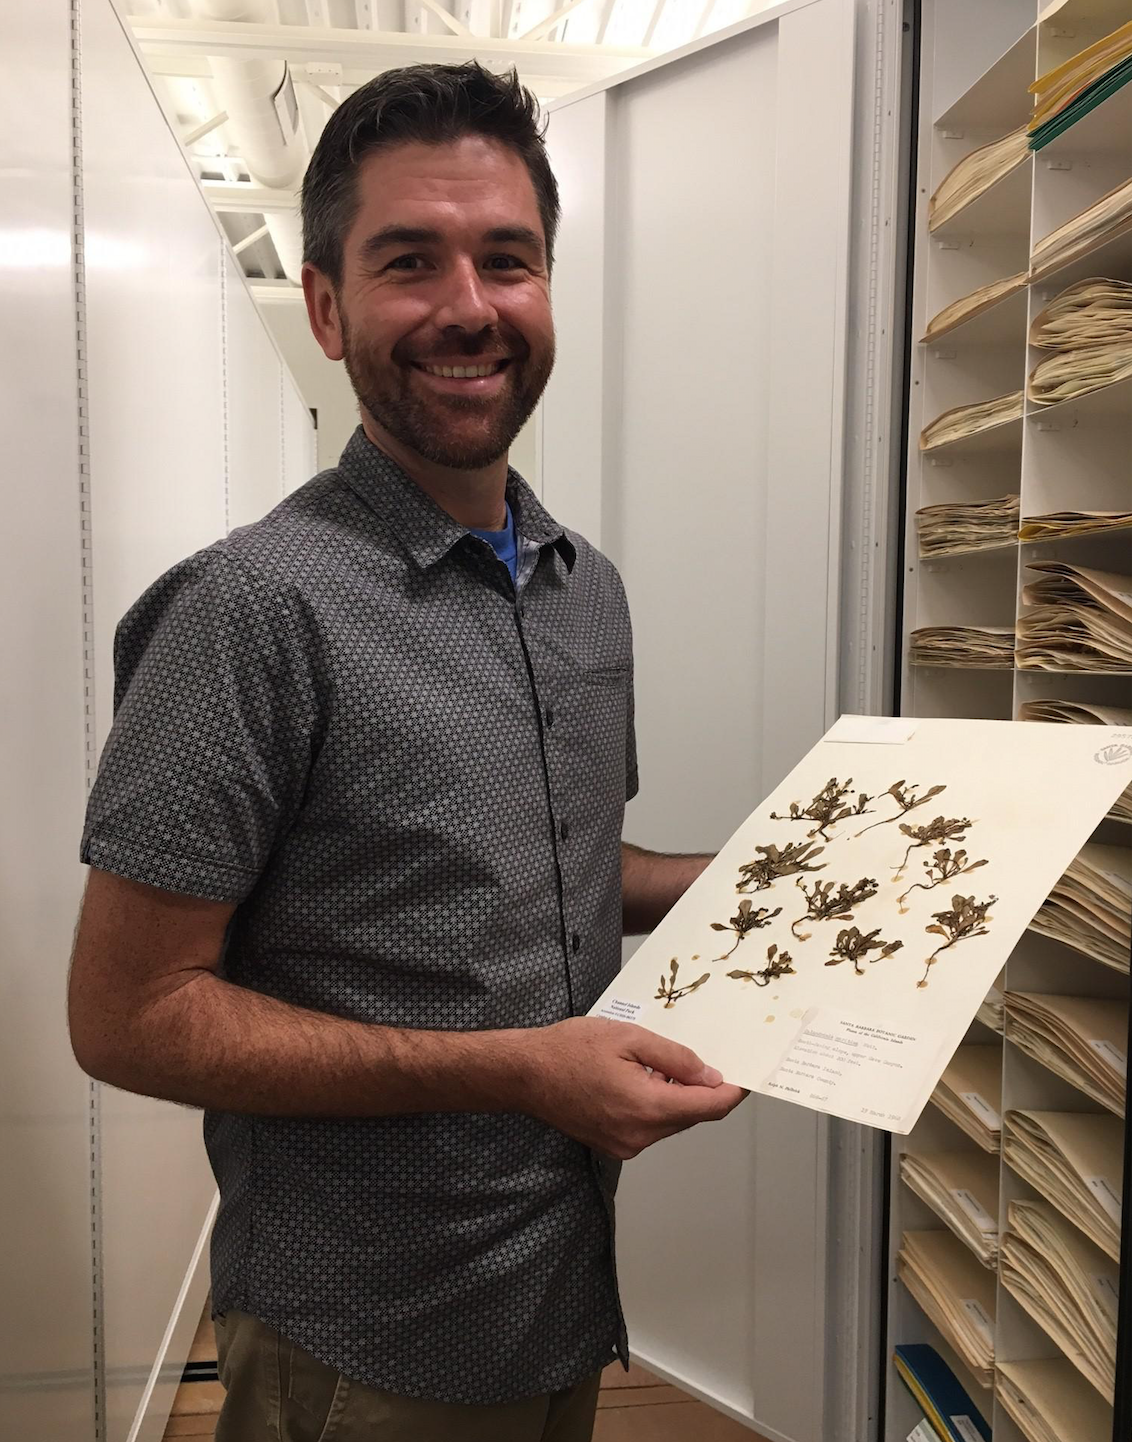 All specimens collected will be databased and stored at APSU's Herbarium